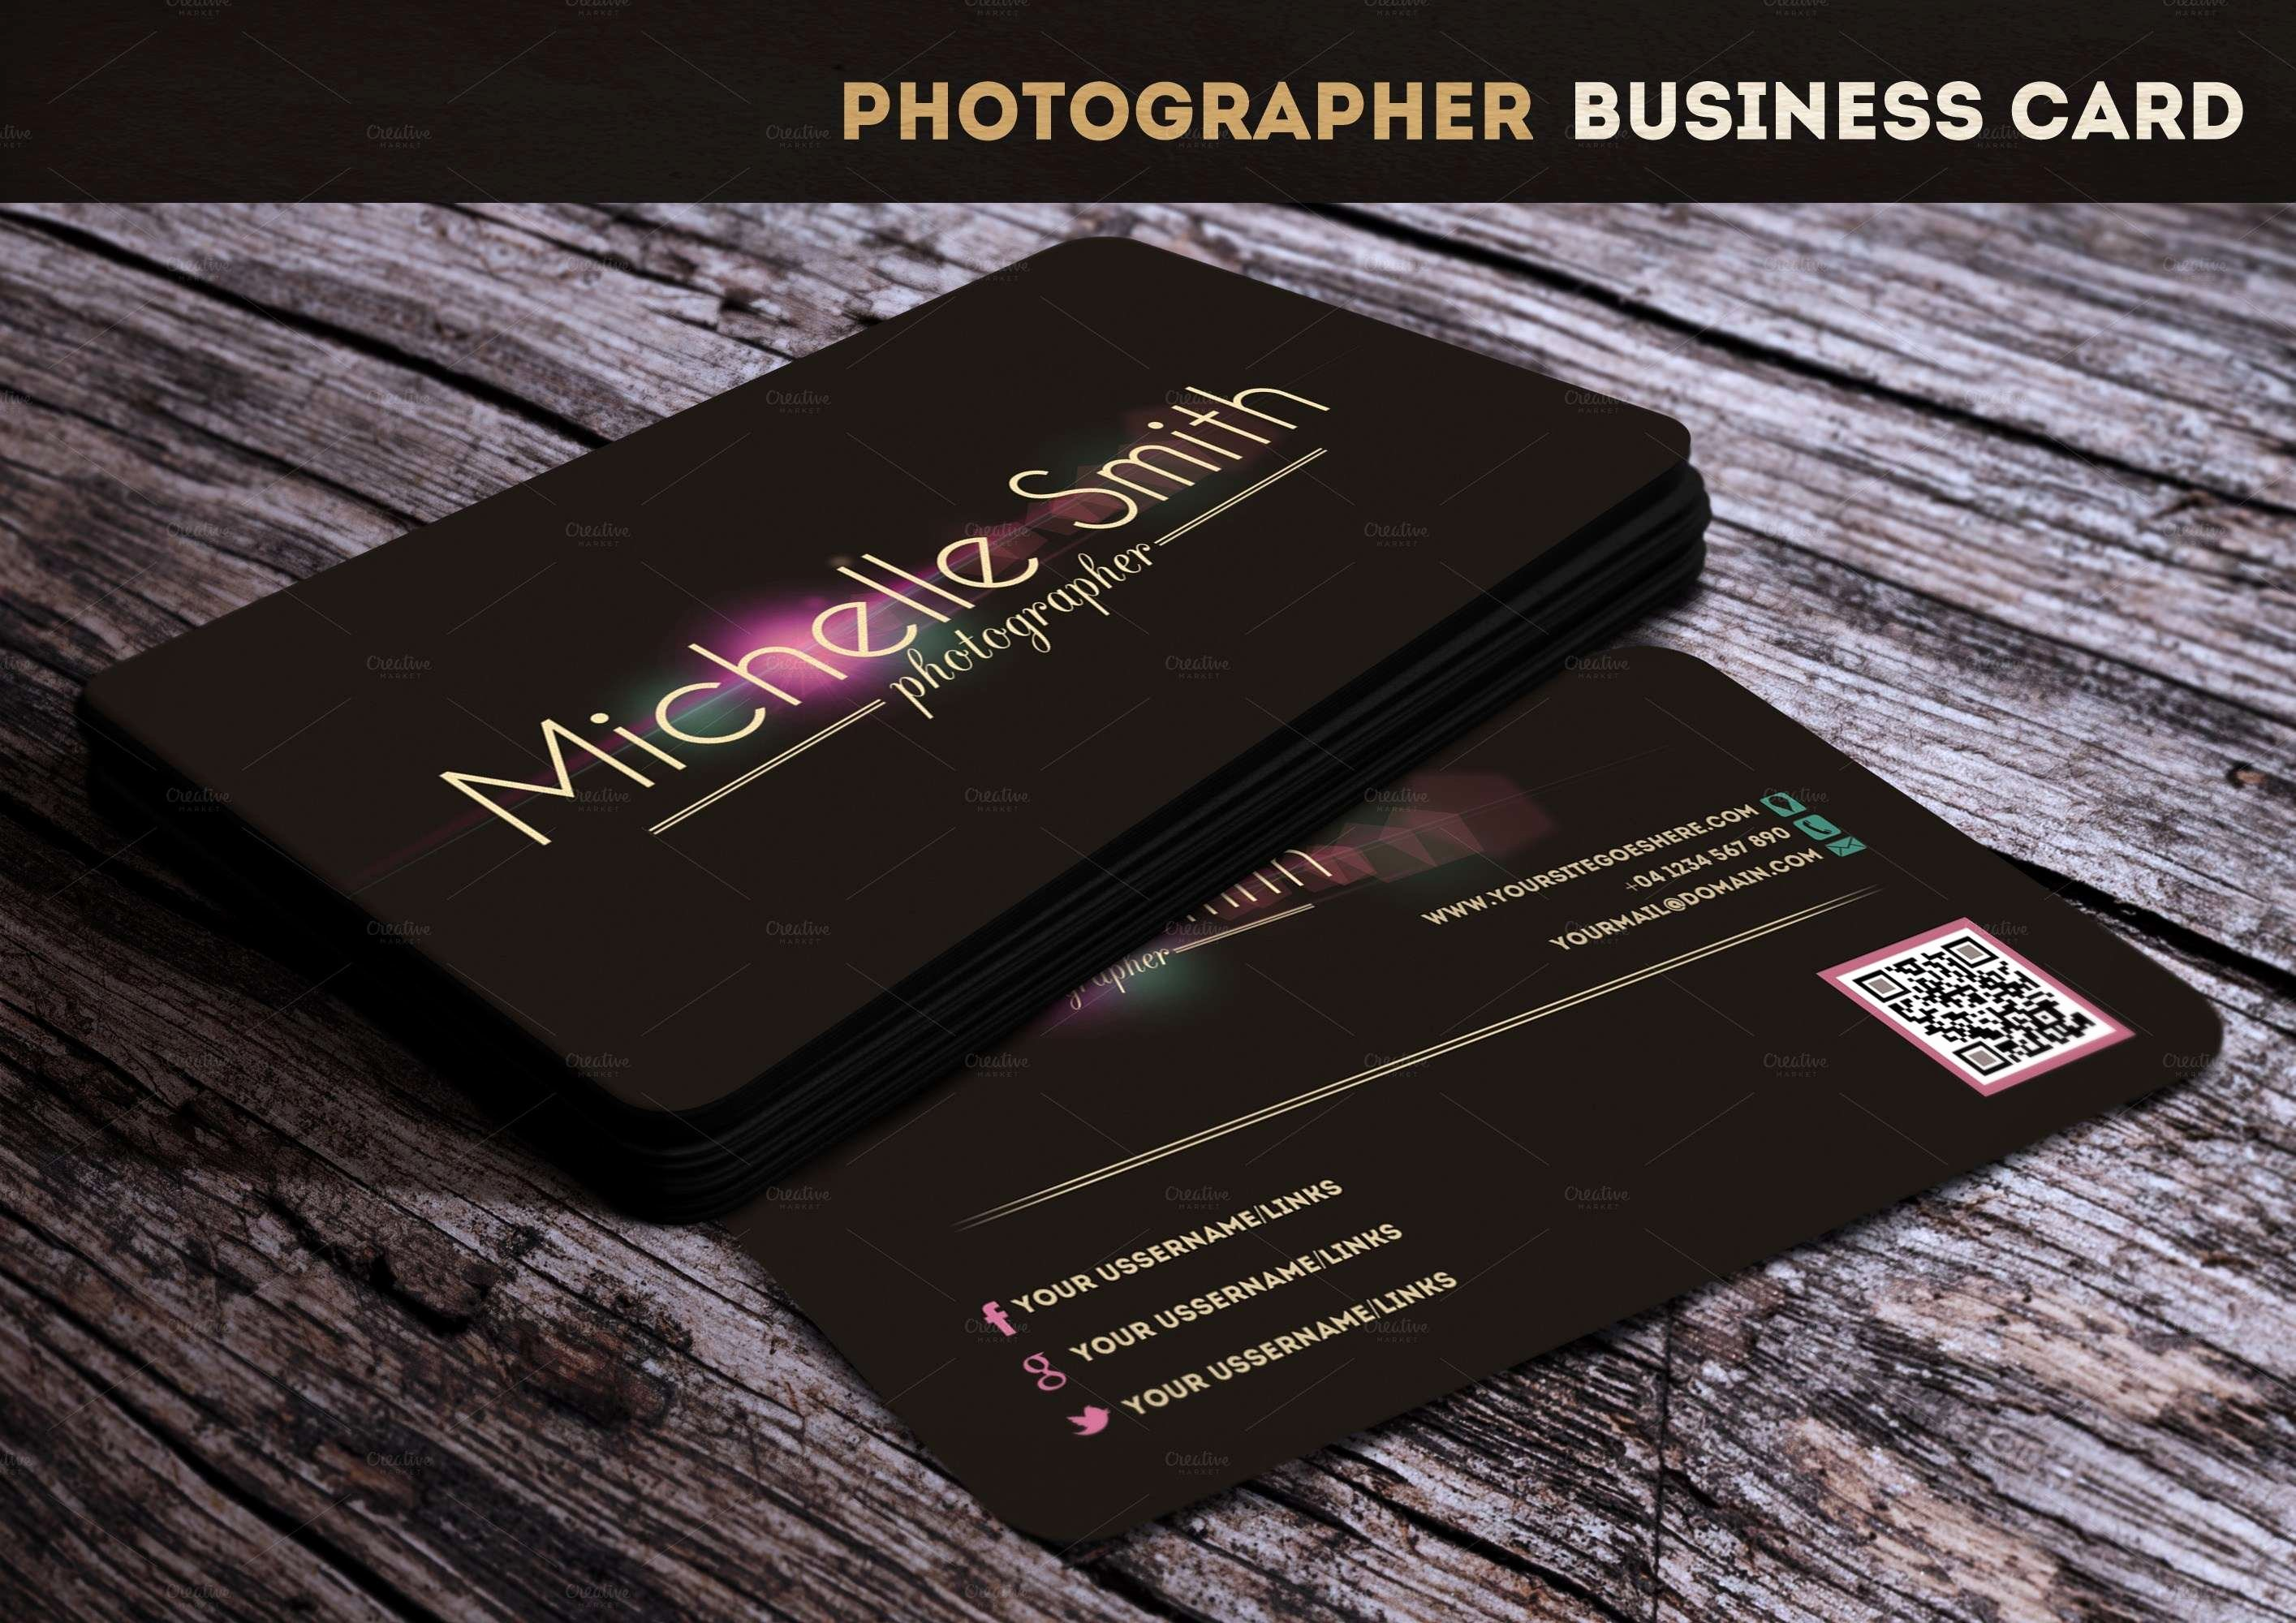 Ibm Business Card Template Elegant Mechanic Business Cards Templates Free with Eightspiders